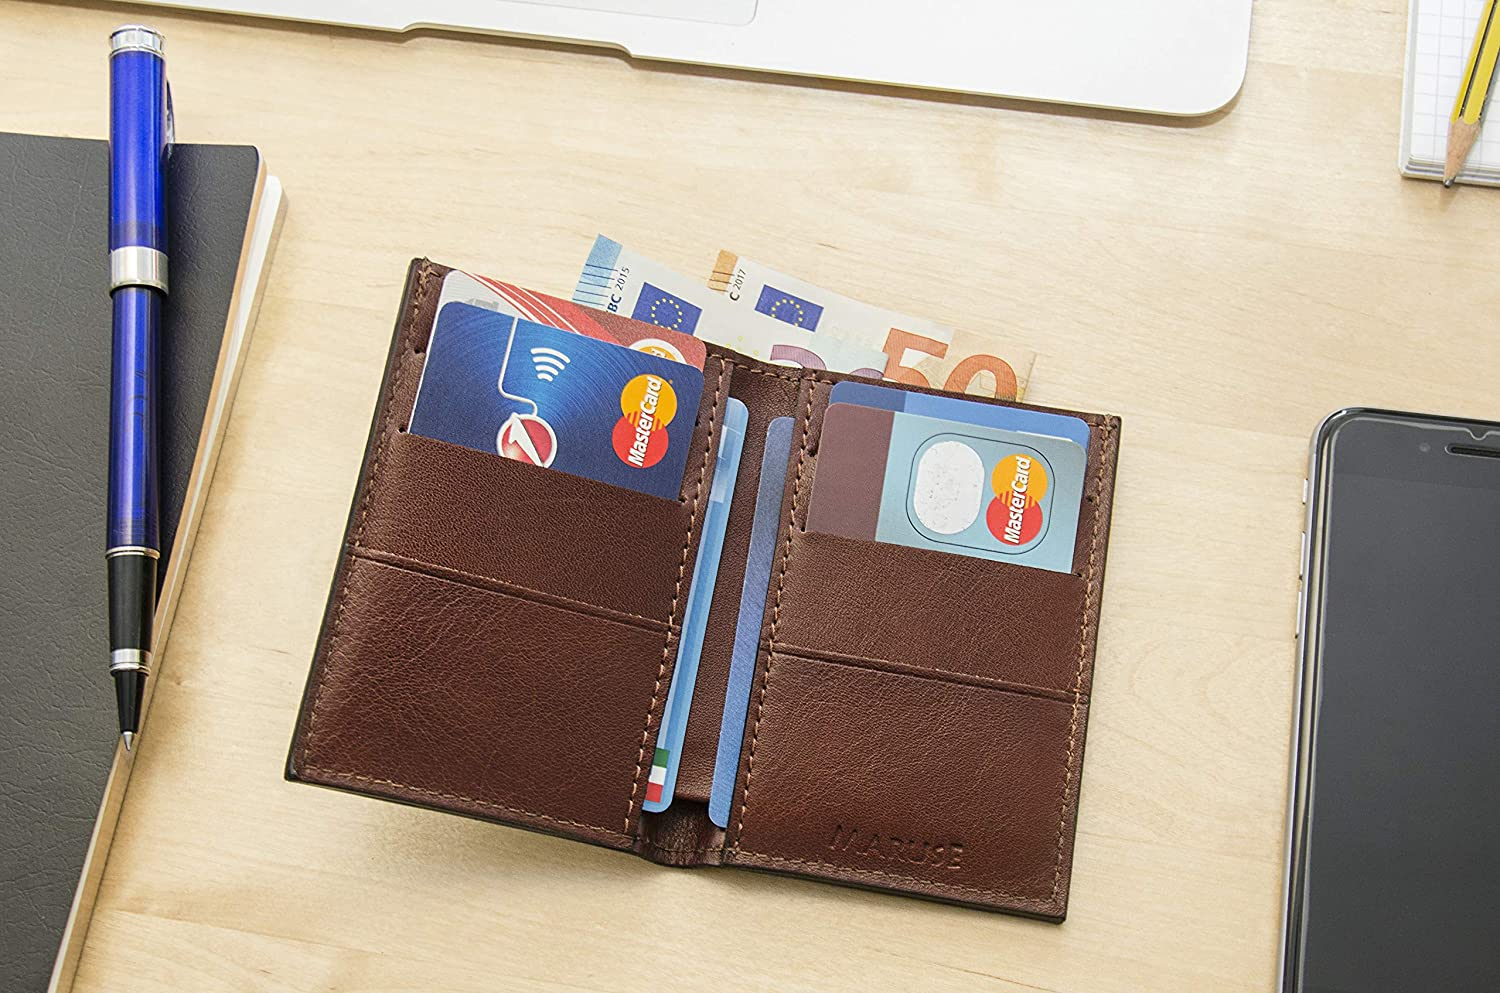 Maruse Slim Leather Wallet cards and bills Handmade in Italy